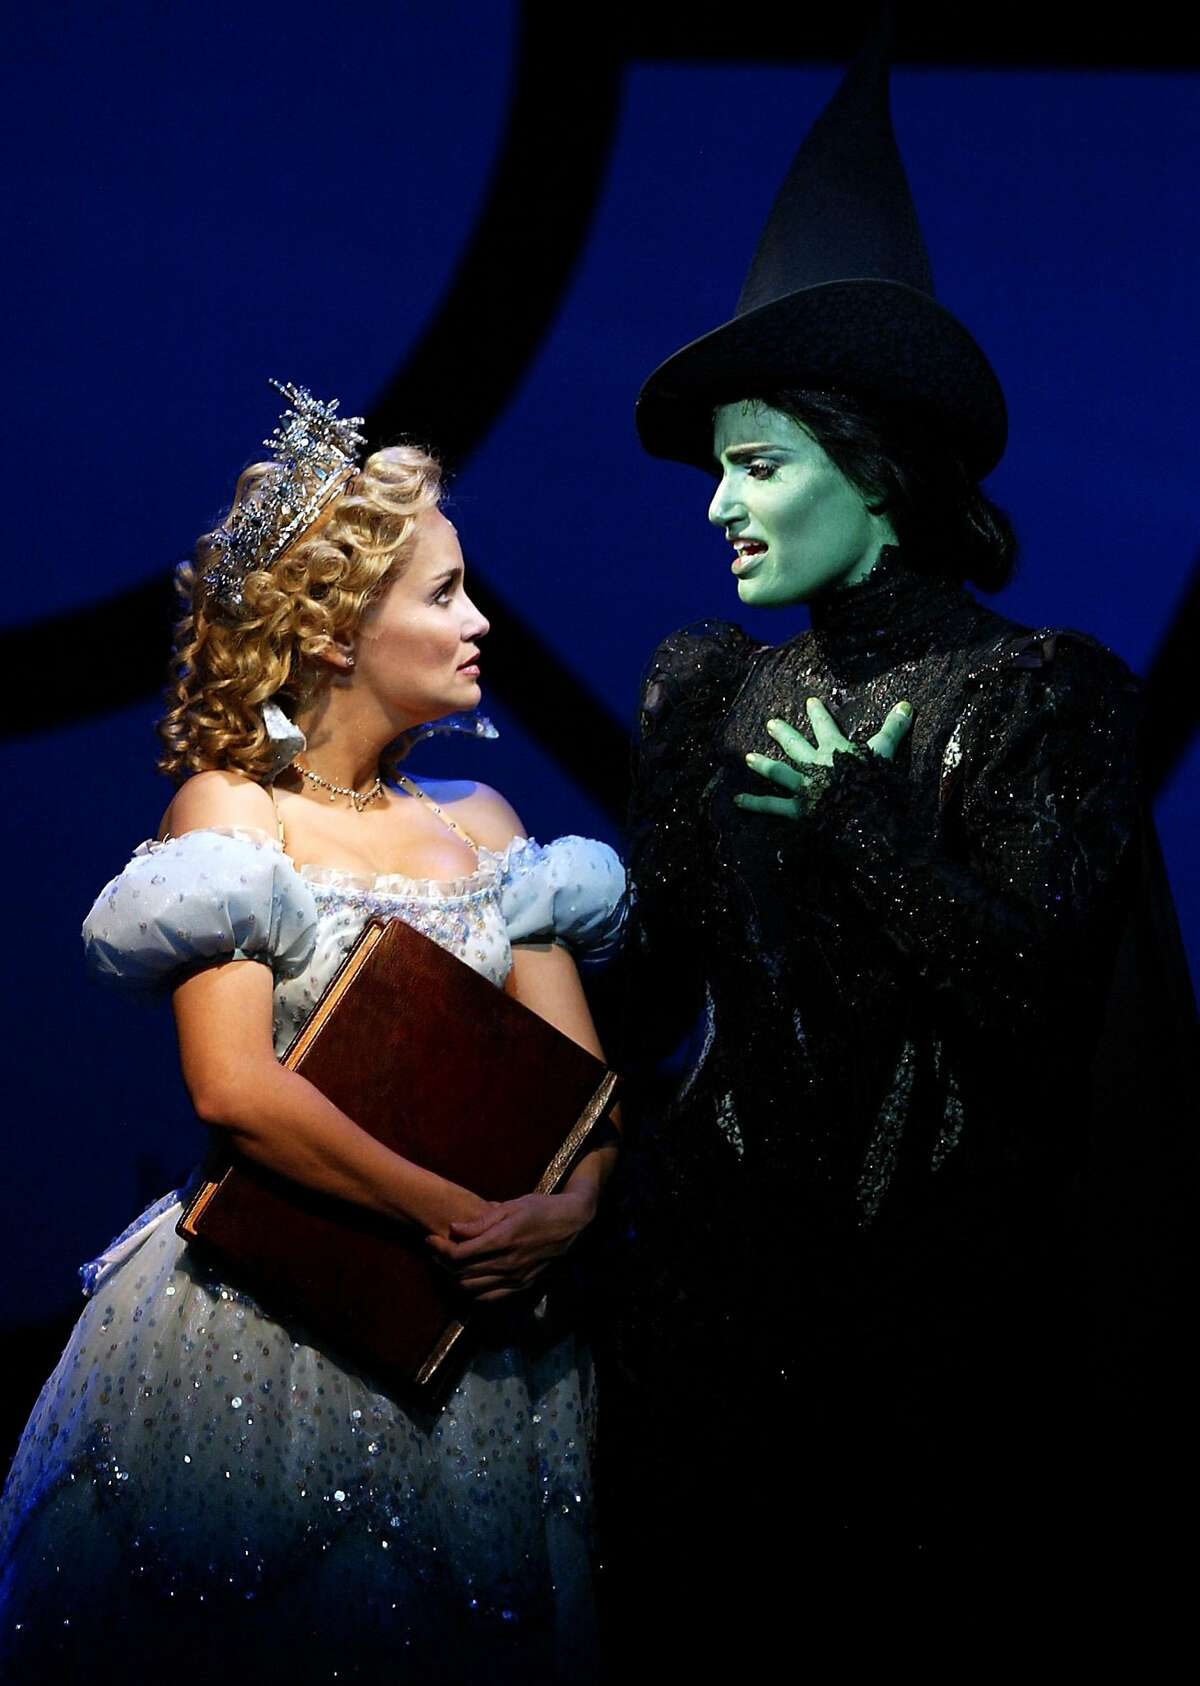 """(NYT20) NEW YORK -- May 10, 2004 -- TONY-NOMINEE-6 -- Kristin Chenowth, left, as Glinda and Idina Menzel as Elphaba in the musical """"Wicked"""" at the Gershwin Theater in Manhattan on October 8, 2003. """"Wicked,"""" the musical inspired by """"The Wizard of Oz"""" that delves into the past of the Wicked Witch of the West, captured 10 Tony Award nominations Monday morning, April 10, 1004, burying its competition somewhere under Auntie Em's house. (Sara Krulwich/The New York Times) ProductNameChronicle Tonya Pinkins in Caroline, or Change; Denis O'Hare, Michael Cerveris, James Barbour, Becky Ann Baker in Assassins; Jefferson Mays in I Am My Own Wife. Tonya Pinkins in Caroline, or Change; Denis O'Hare, Michael Cerveris, James Barbour, Becky Ann Baker in Assassins; Jefferson Mays in I Am My Own Wife. ProductNameChronicle"""